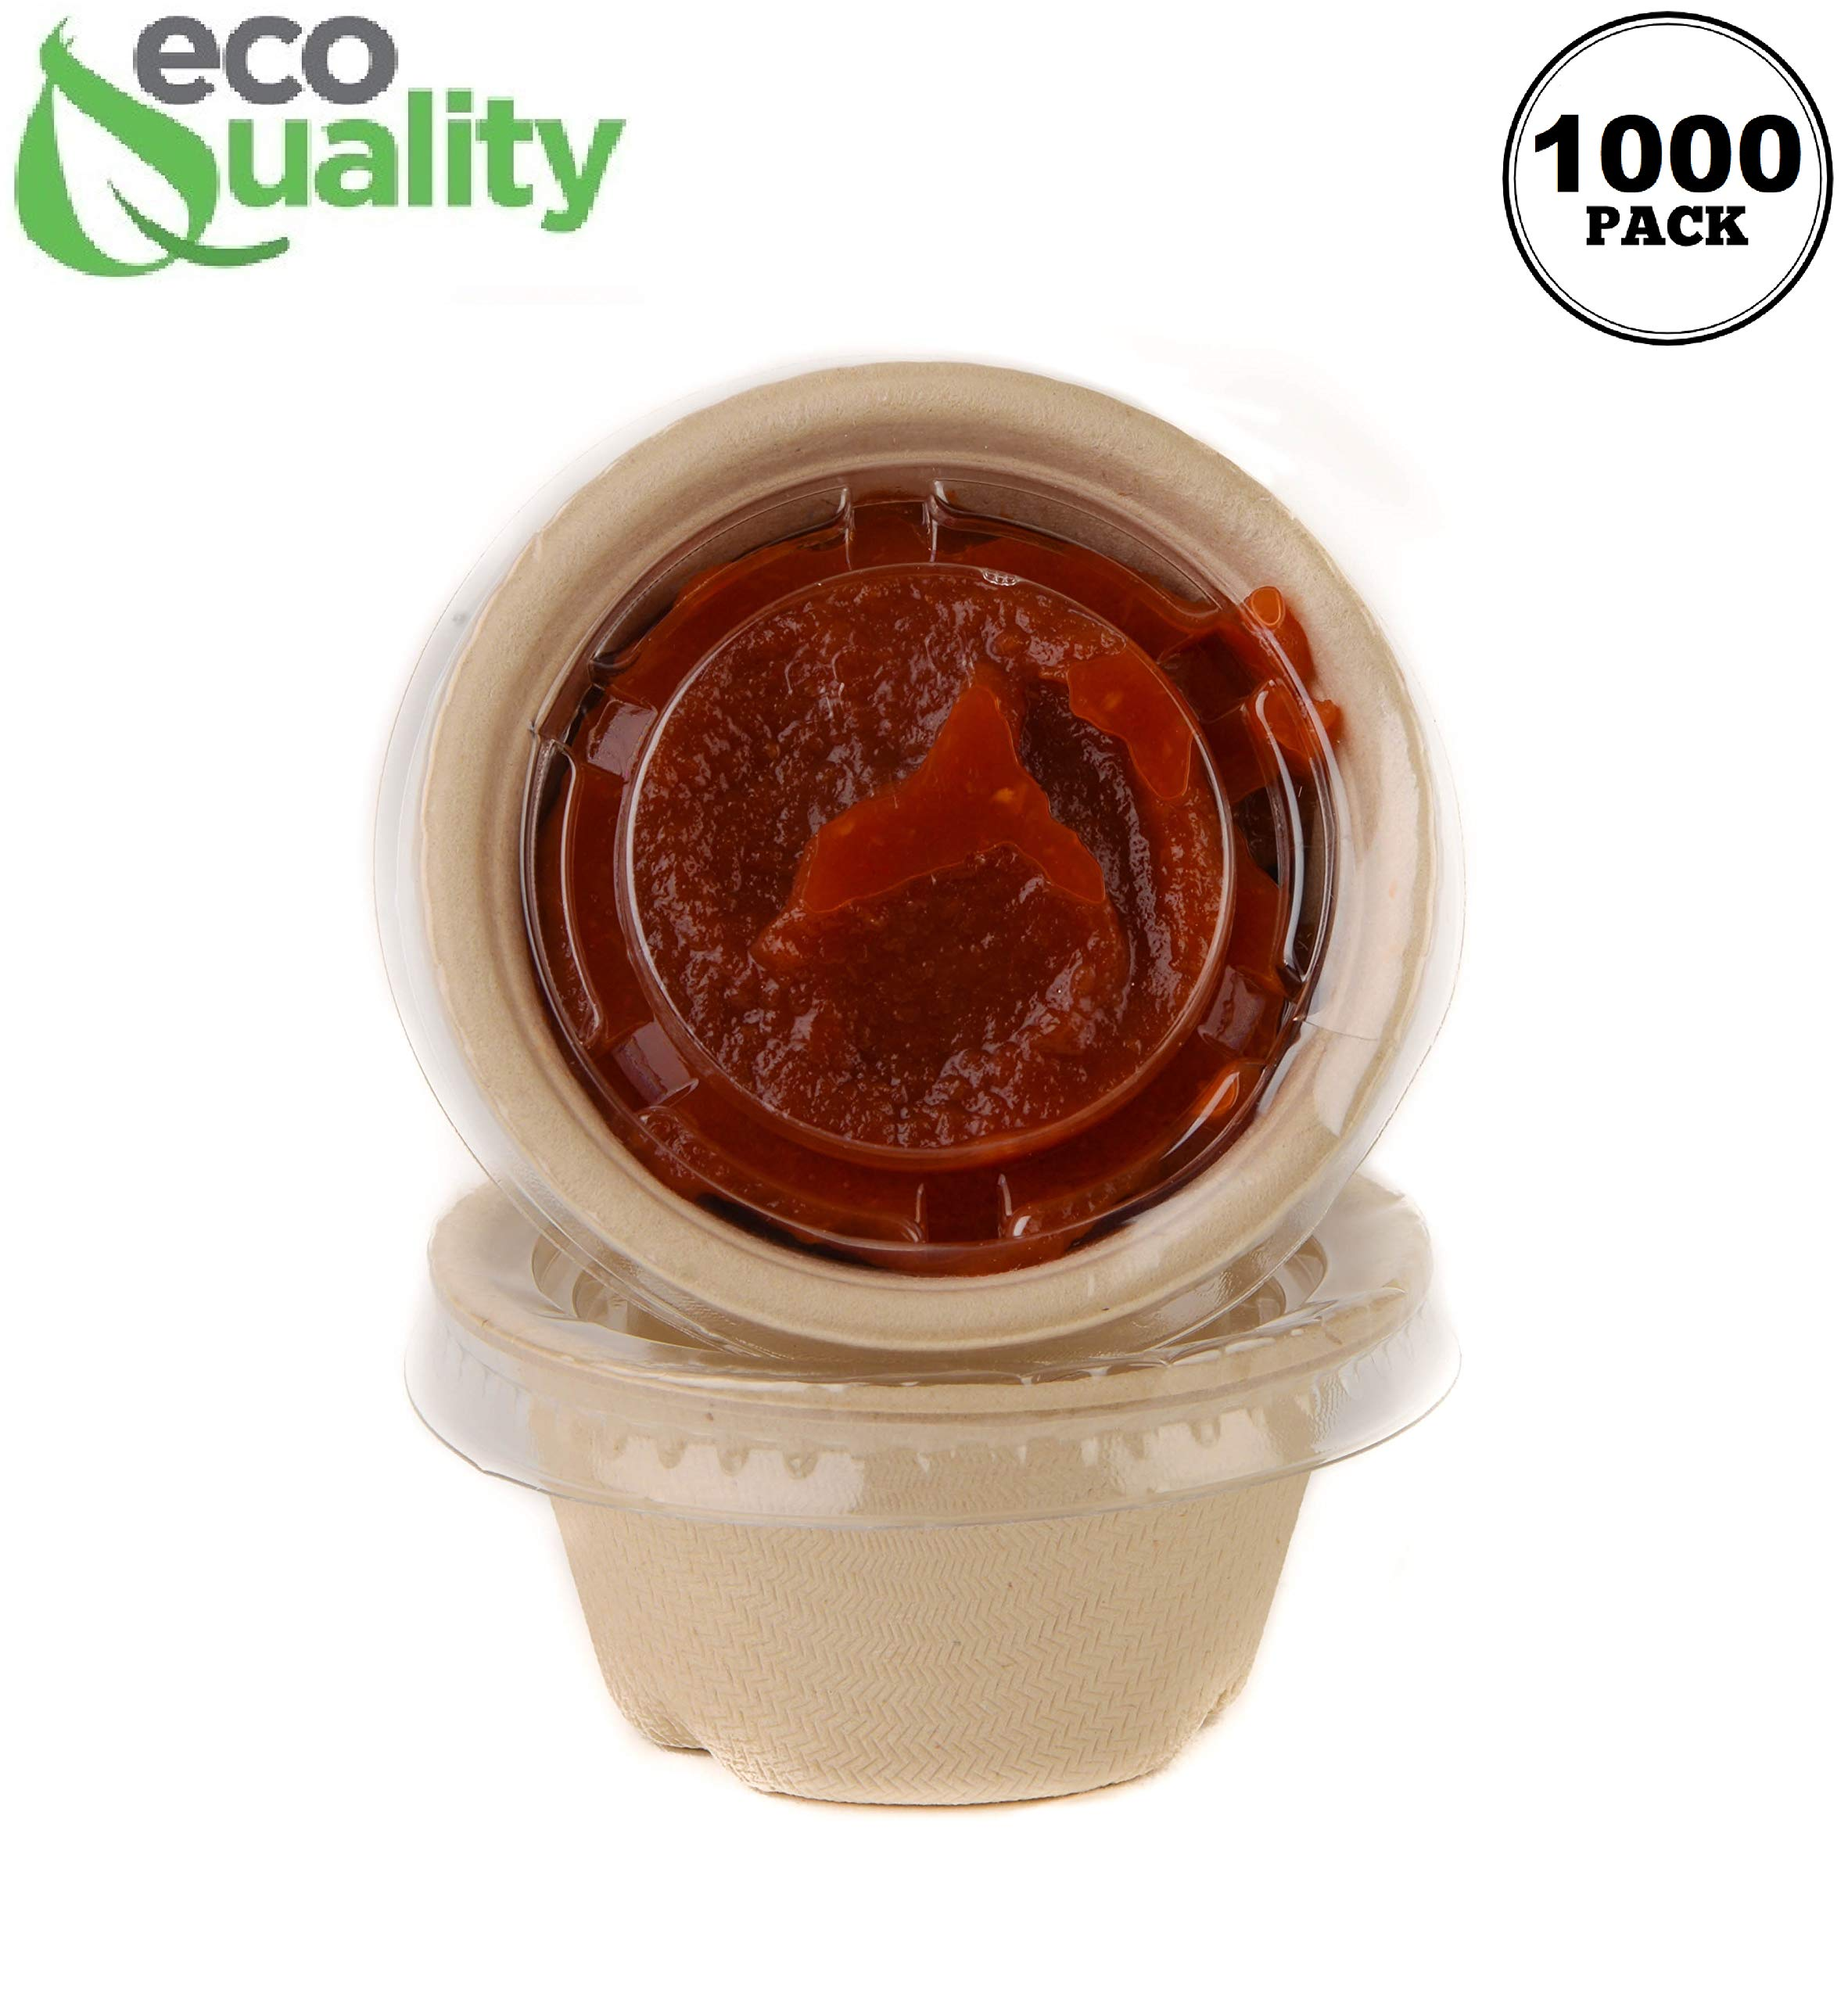 [1000 Pack] 2 Oz Compostable Condiment Souffle Bagasse Cups with Lids - Portion Cup with Lid Sugarcane, Biodegradable Perfect for Sauces, Samples, Condiments, Slime, Jello Shot, Food Storage by EcoQuality